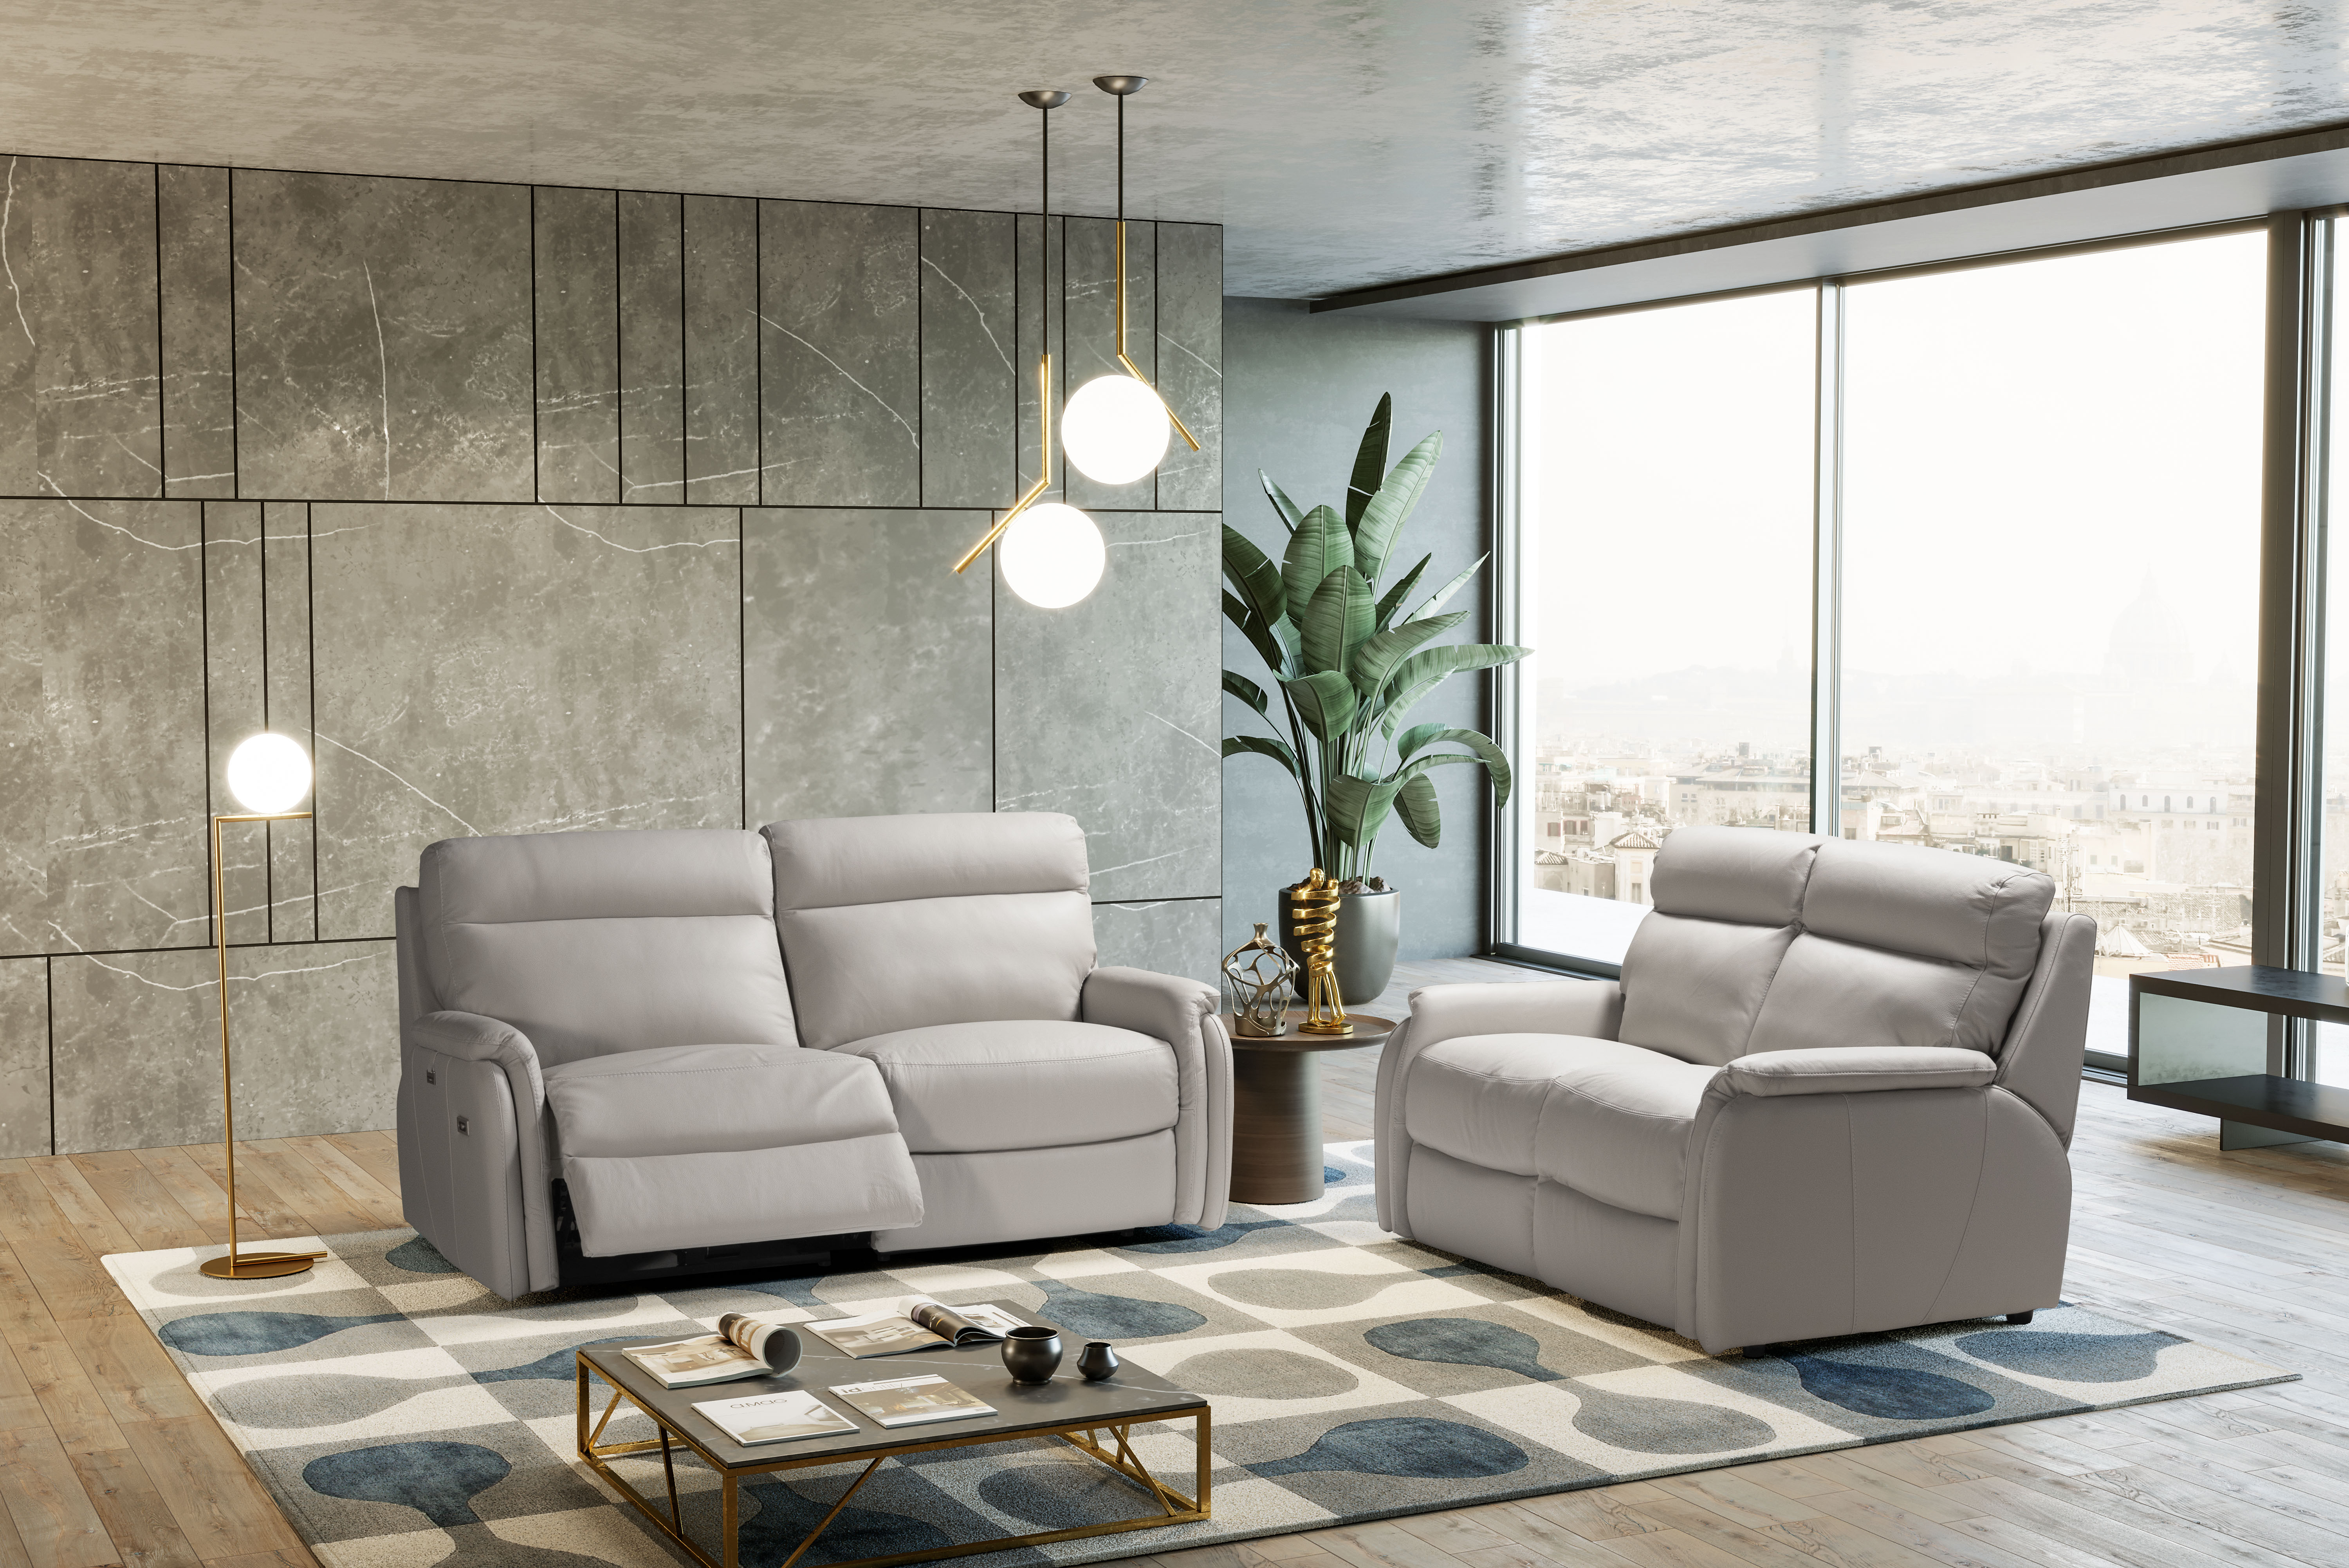 FOX Italian Leather Recliner 3 & 2 Seat Sofa by Galieri - Cenere Light Grey